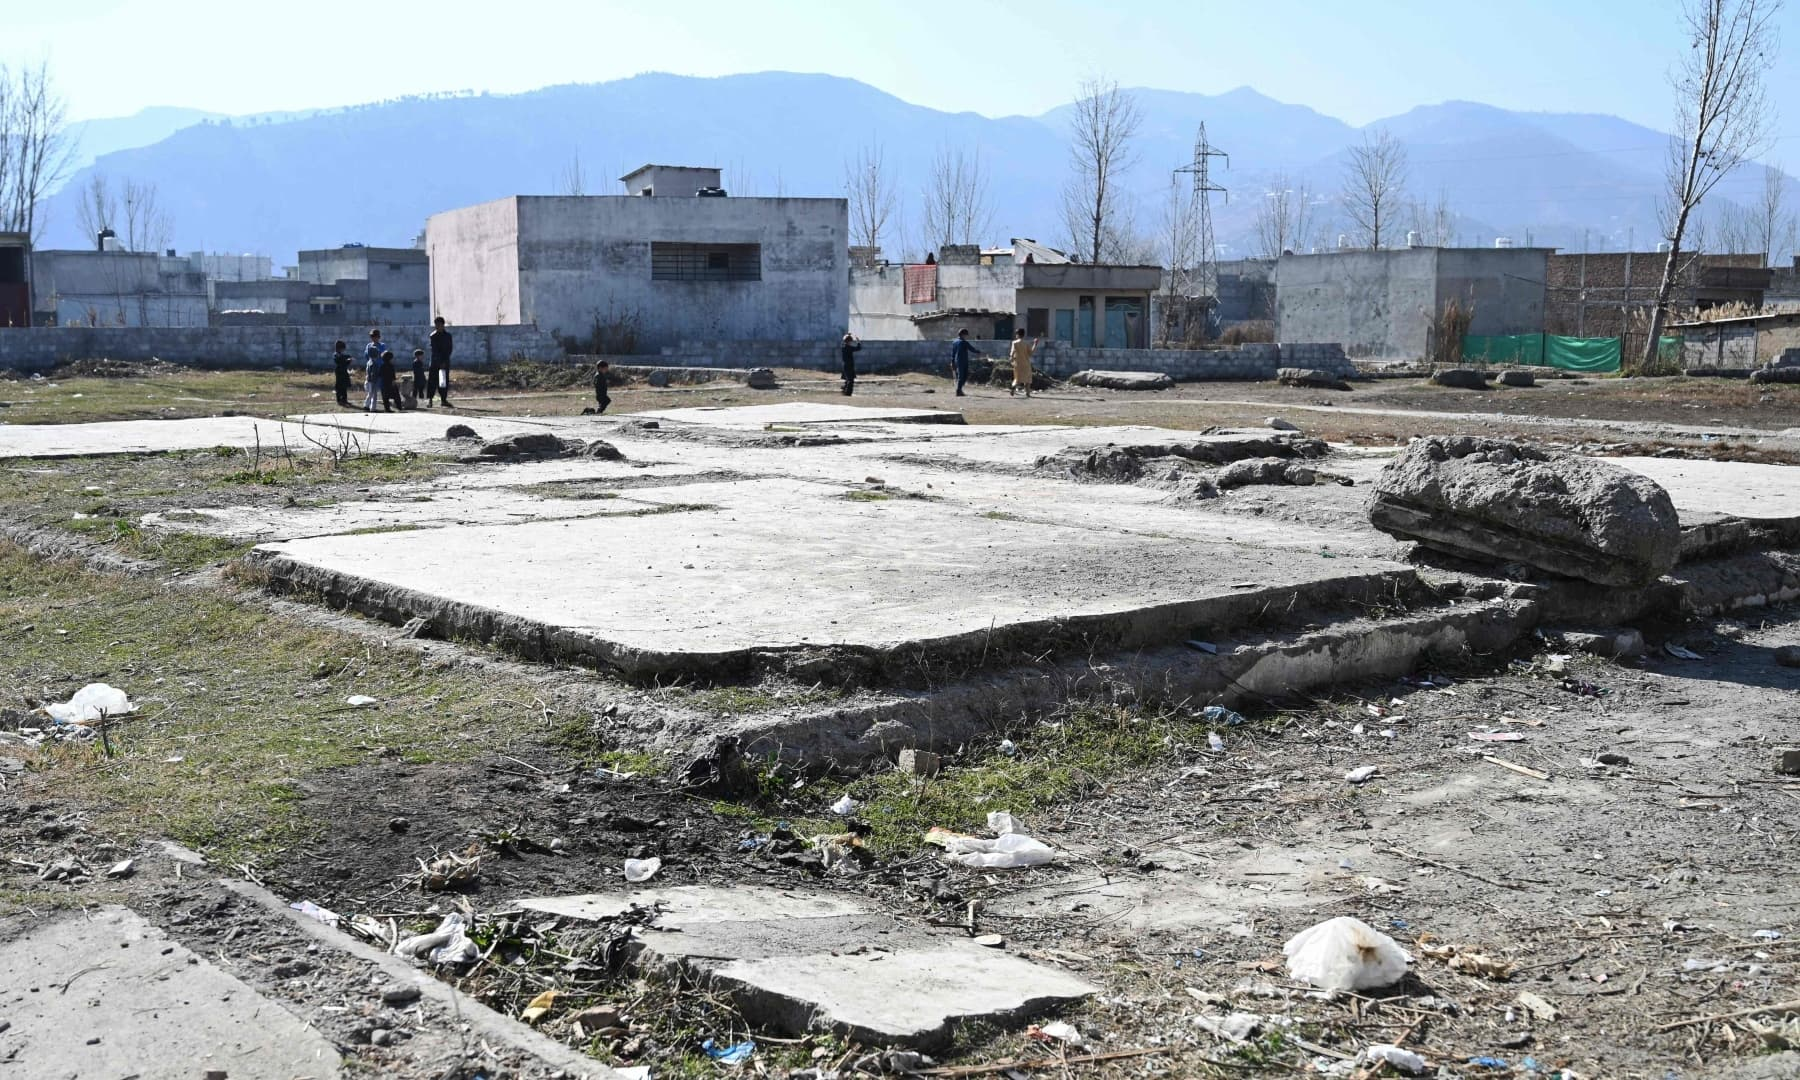 Children play cricket at the site of the demolished compound of slain former Al Qaeda leader Osama bin Laden in northern Abbottabad, In this picture taken on February 11, 2021. — AFP